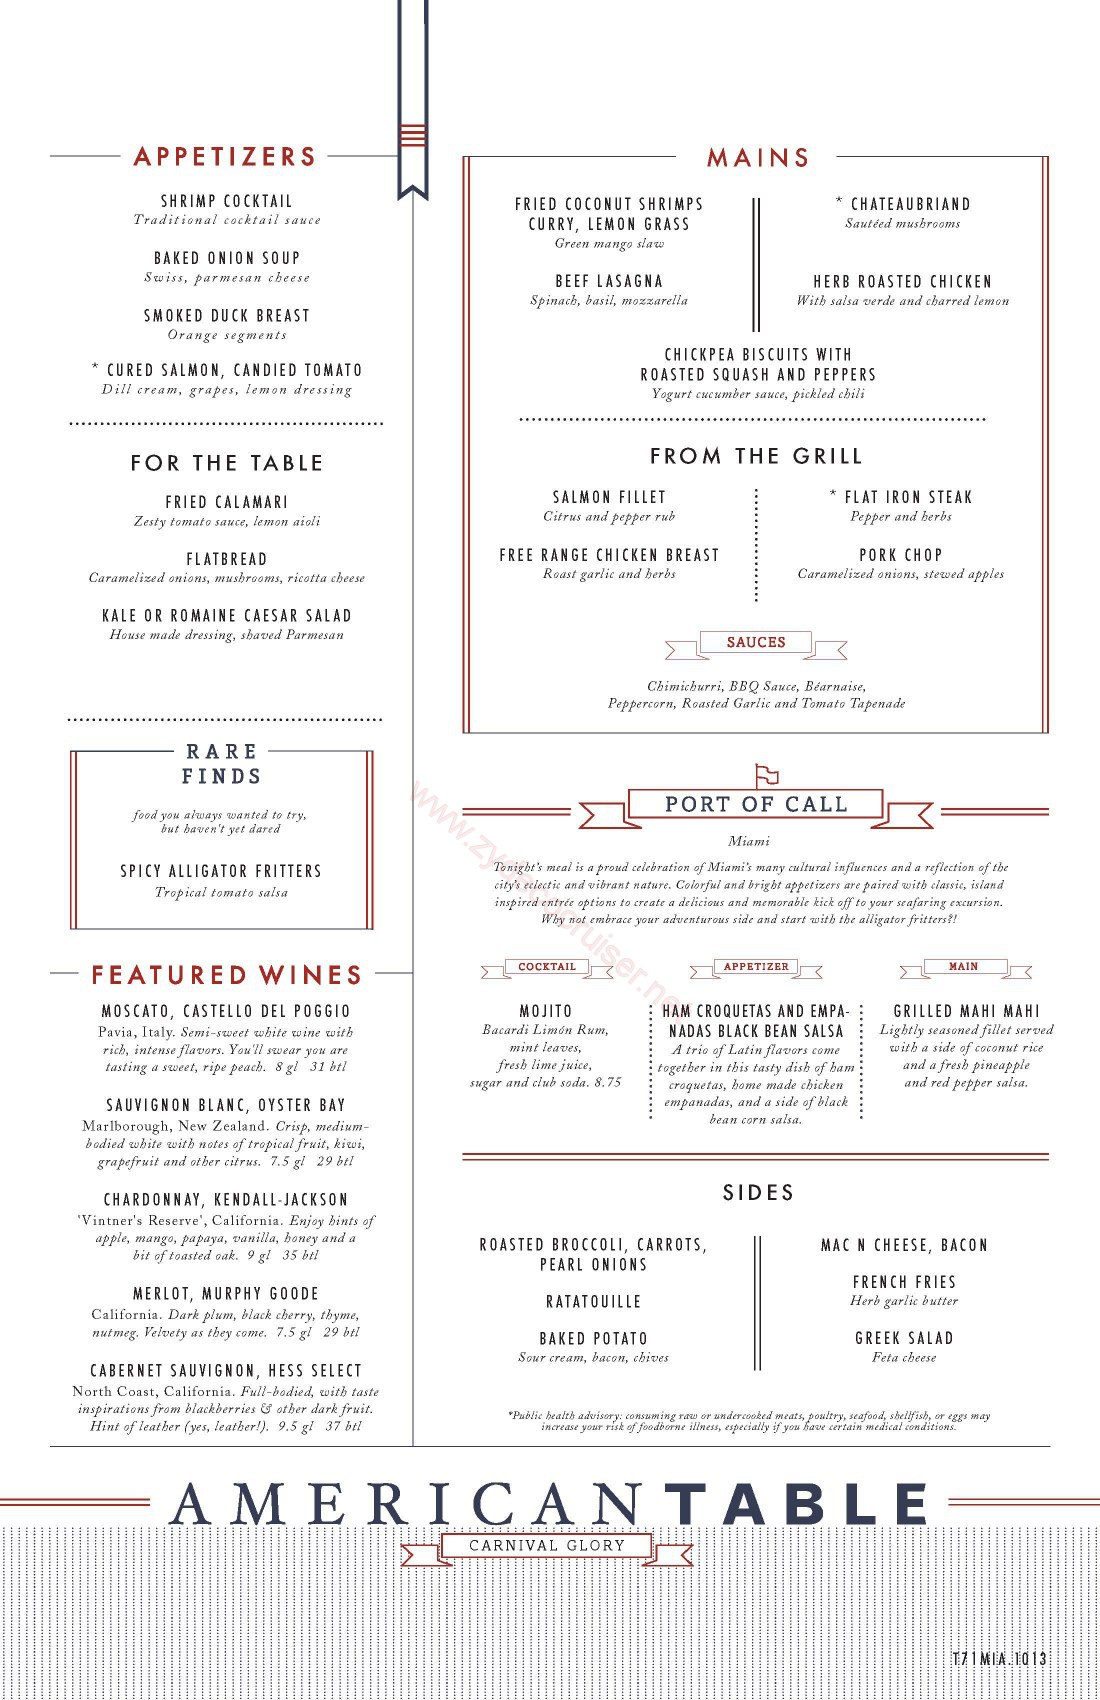 Carnival glory western american table menu miami for Restaurant table menu